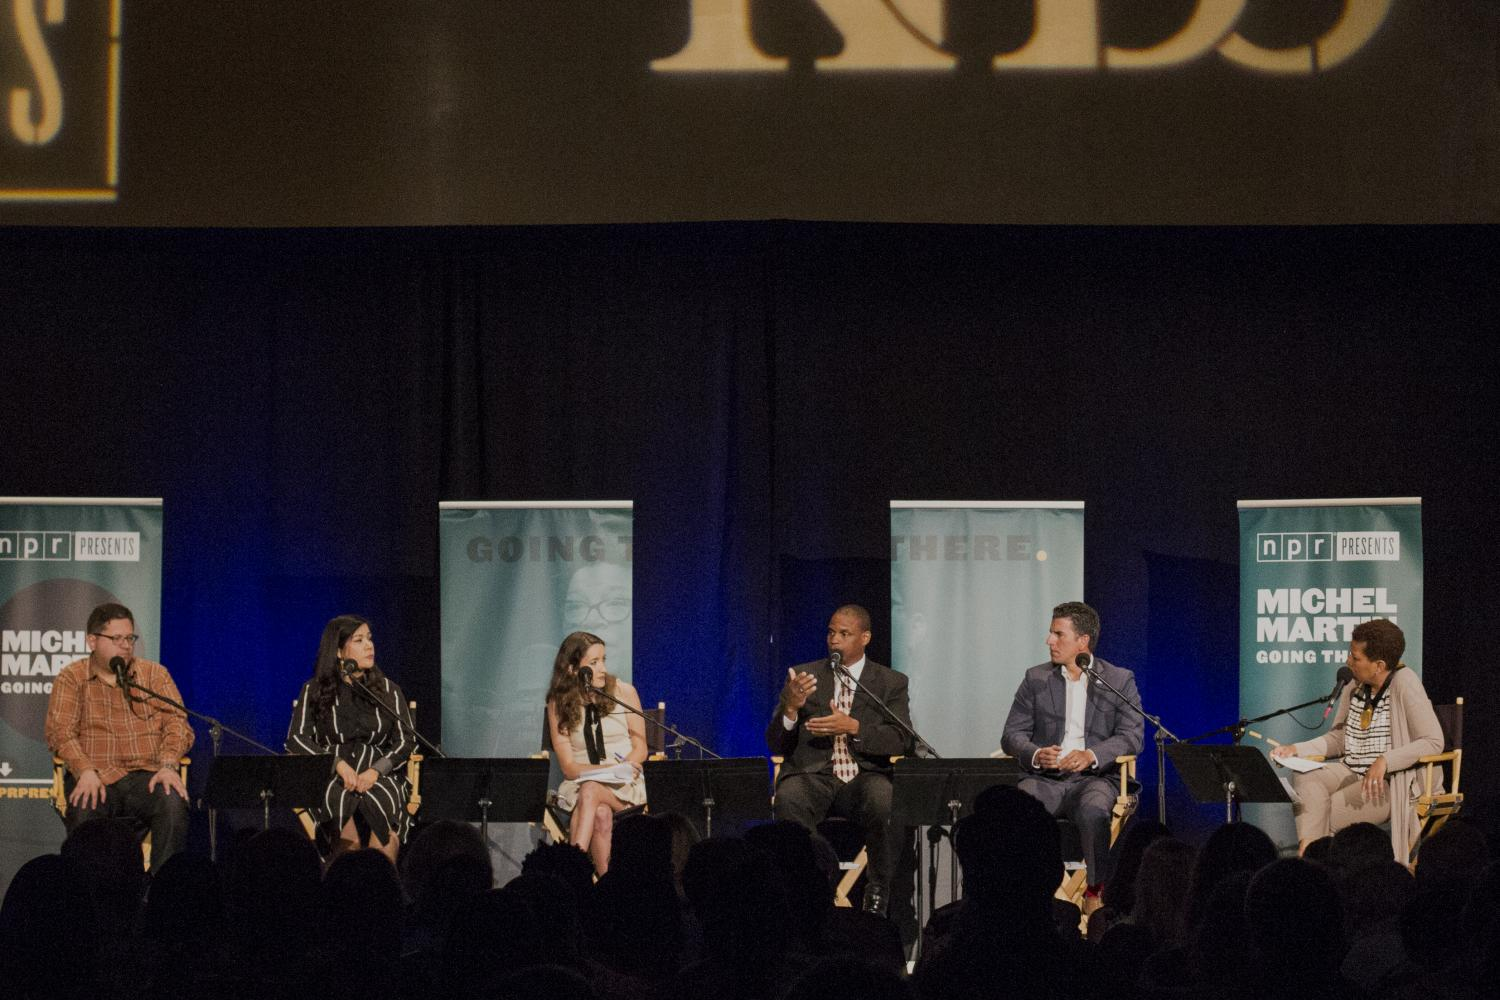 Experts talked about life in the border region, illegal immigration, the cross-border economy, among other topics, at a panel discussion hosted by NPR at the Jacobs Center for Neighborhood Innovation in San Diego on May 2.